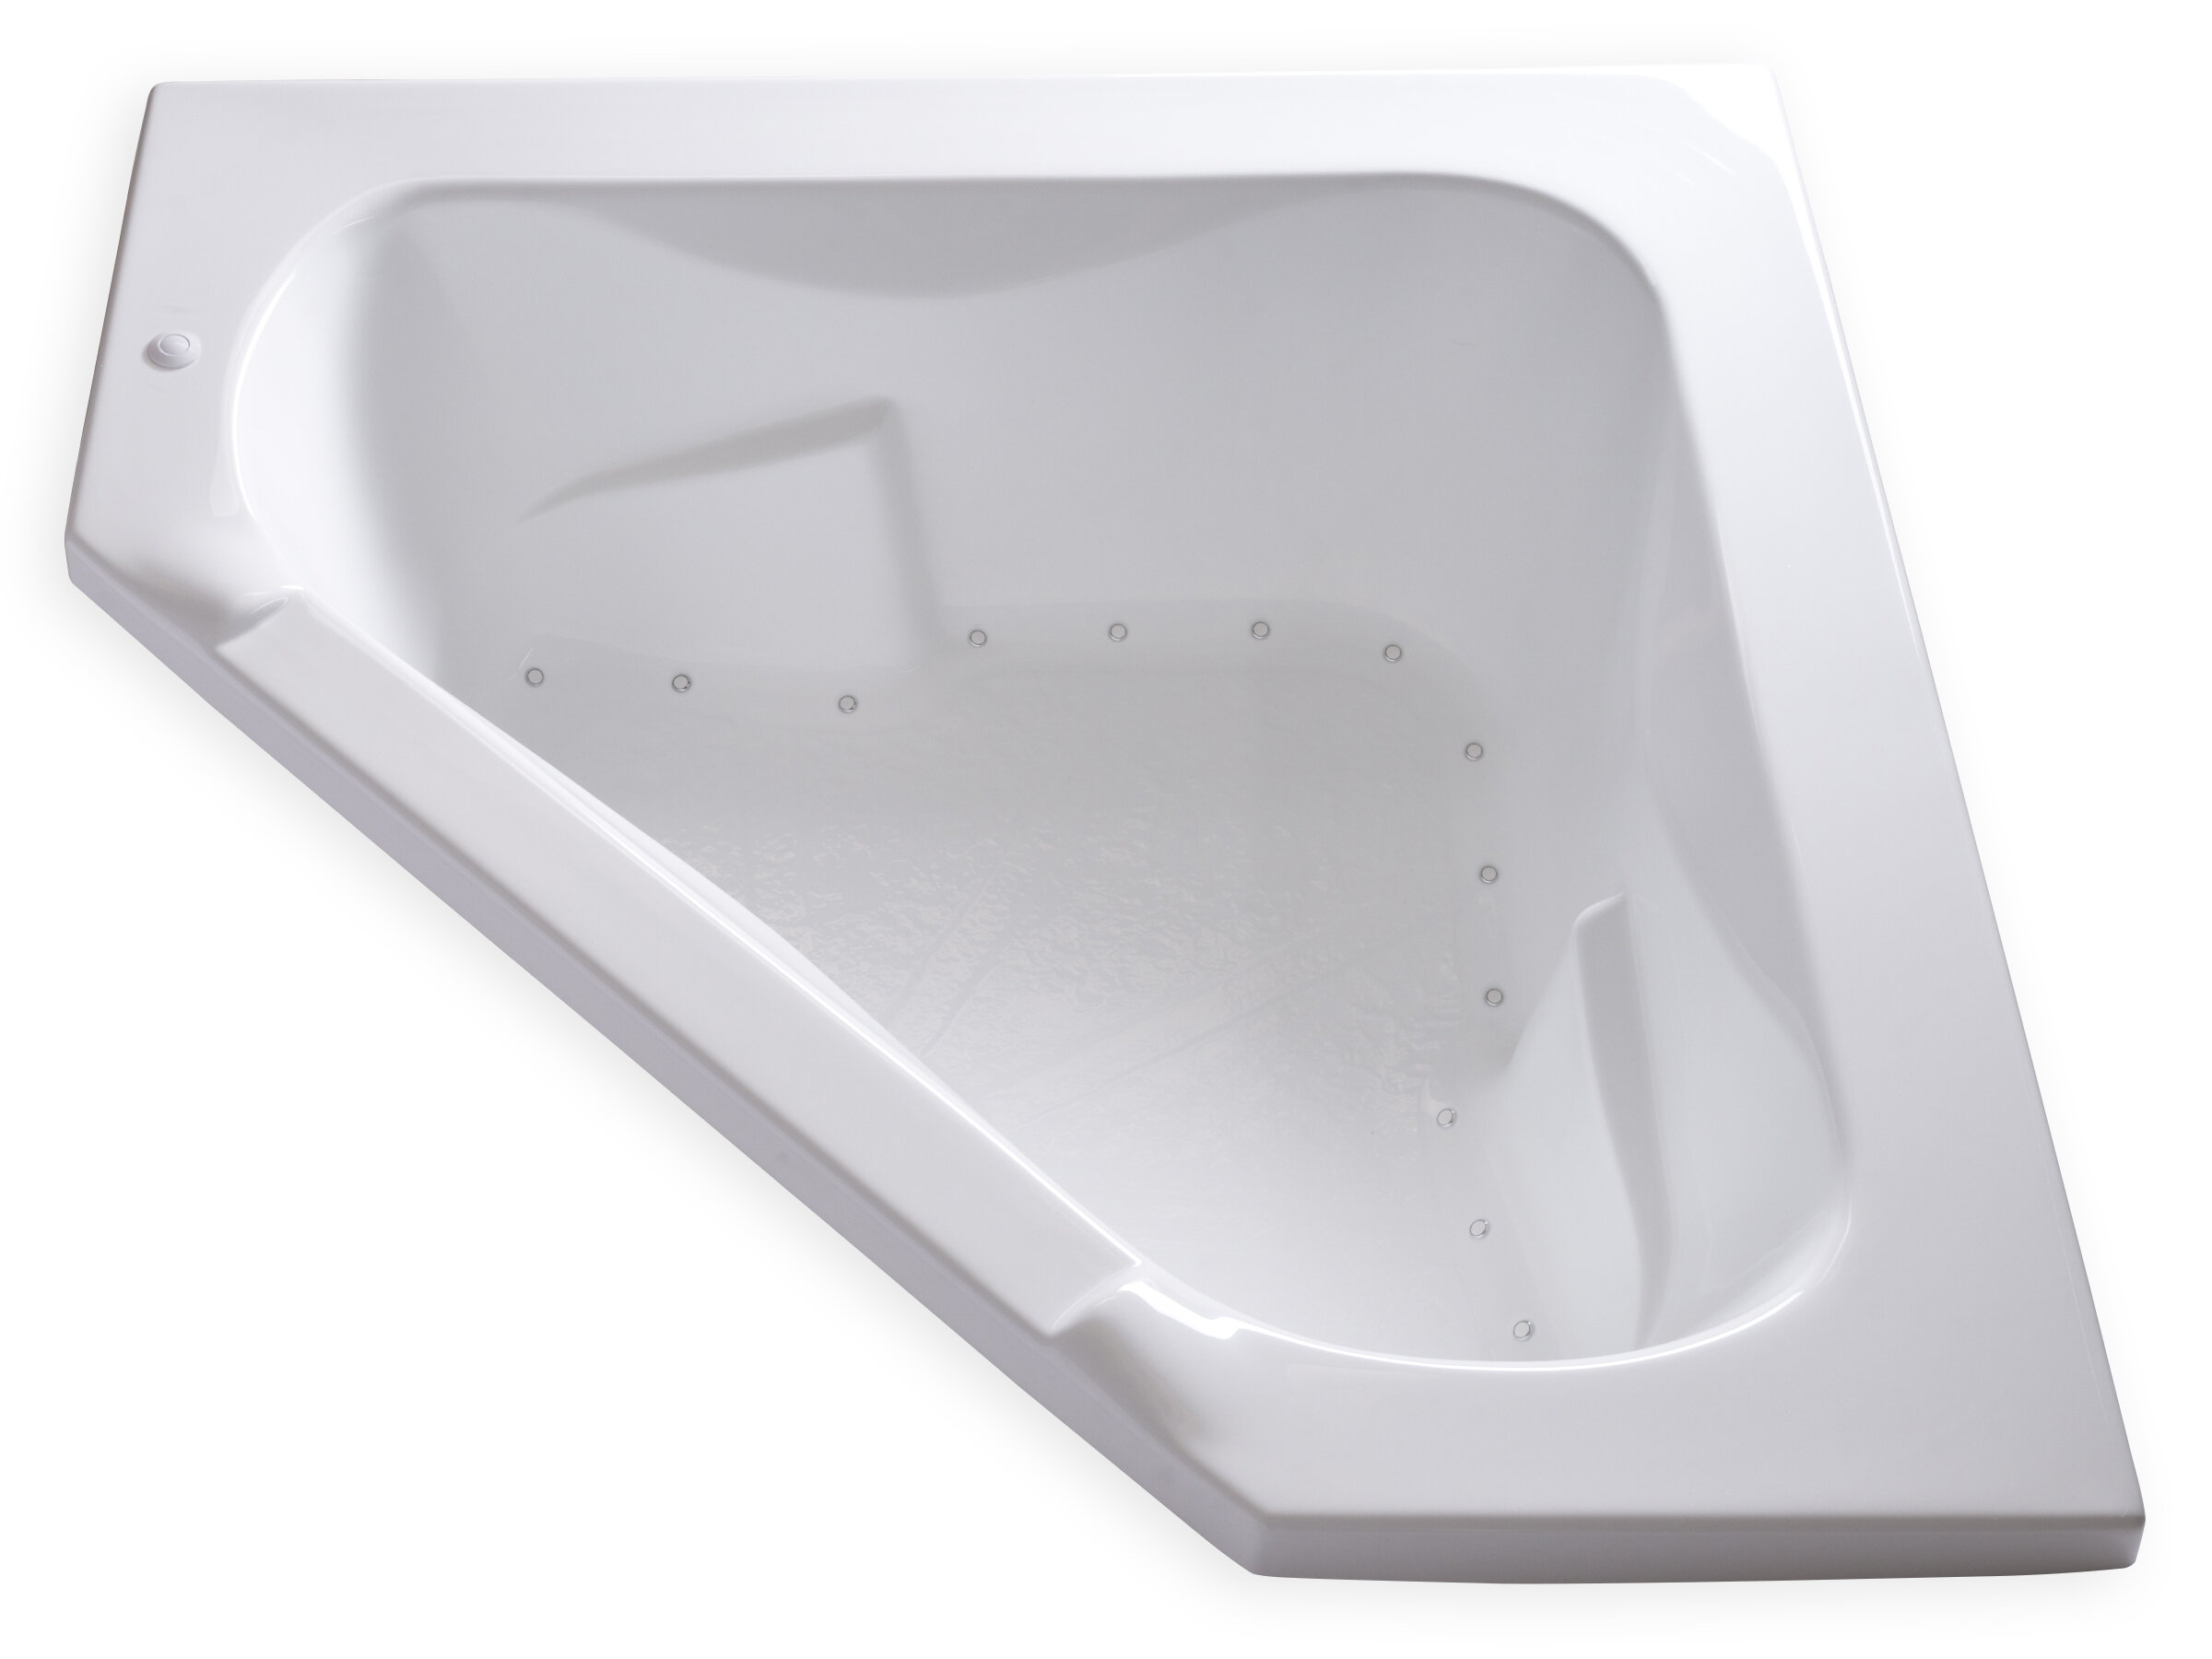 Carver Tubs Hygienic Air Tub 60\